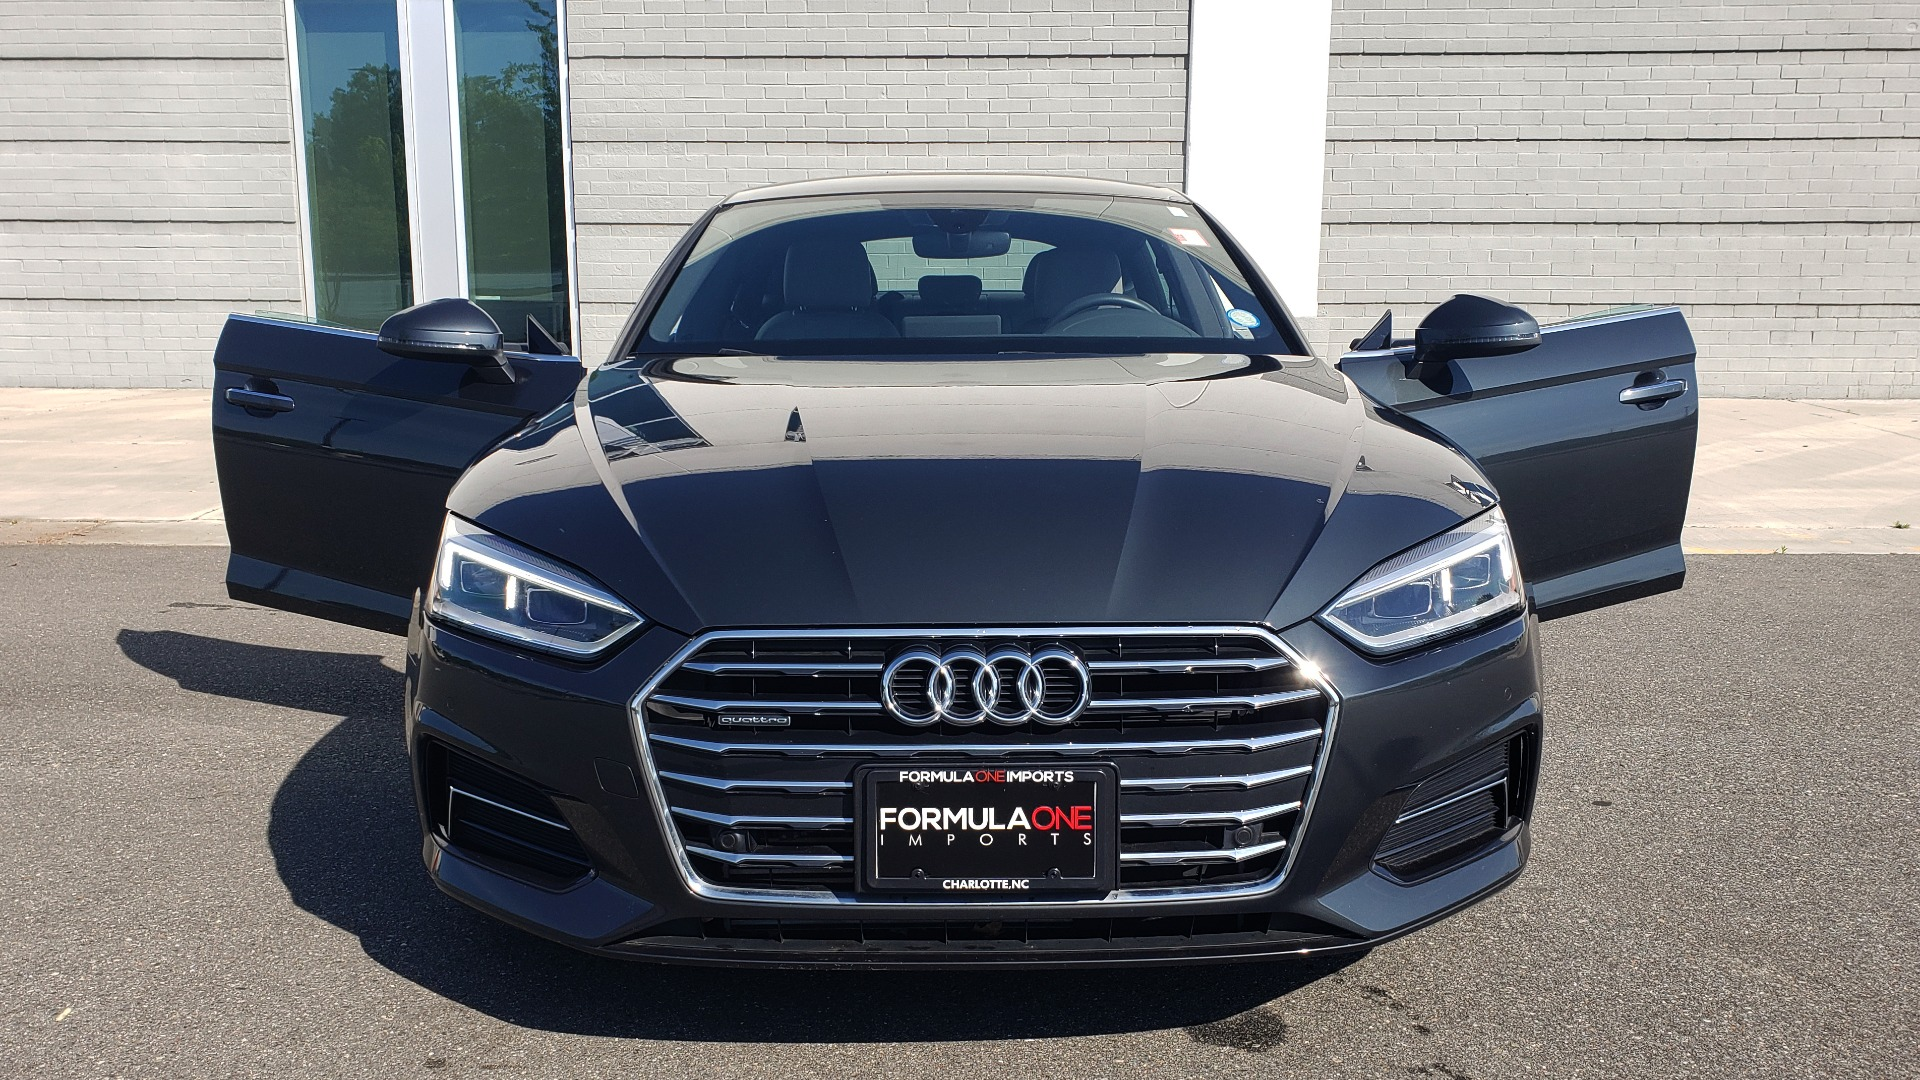 Used 2018 Audi A5 SPORTBACK PREMIUM PLUS 2.0T / AWD / NAV / B&O SND / SUNROOF / REARVIEW for sale Sold at Formula Imports in Charlotte NC 28227 26